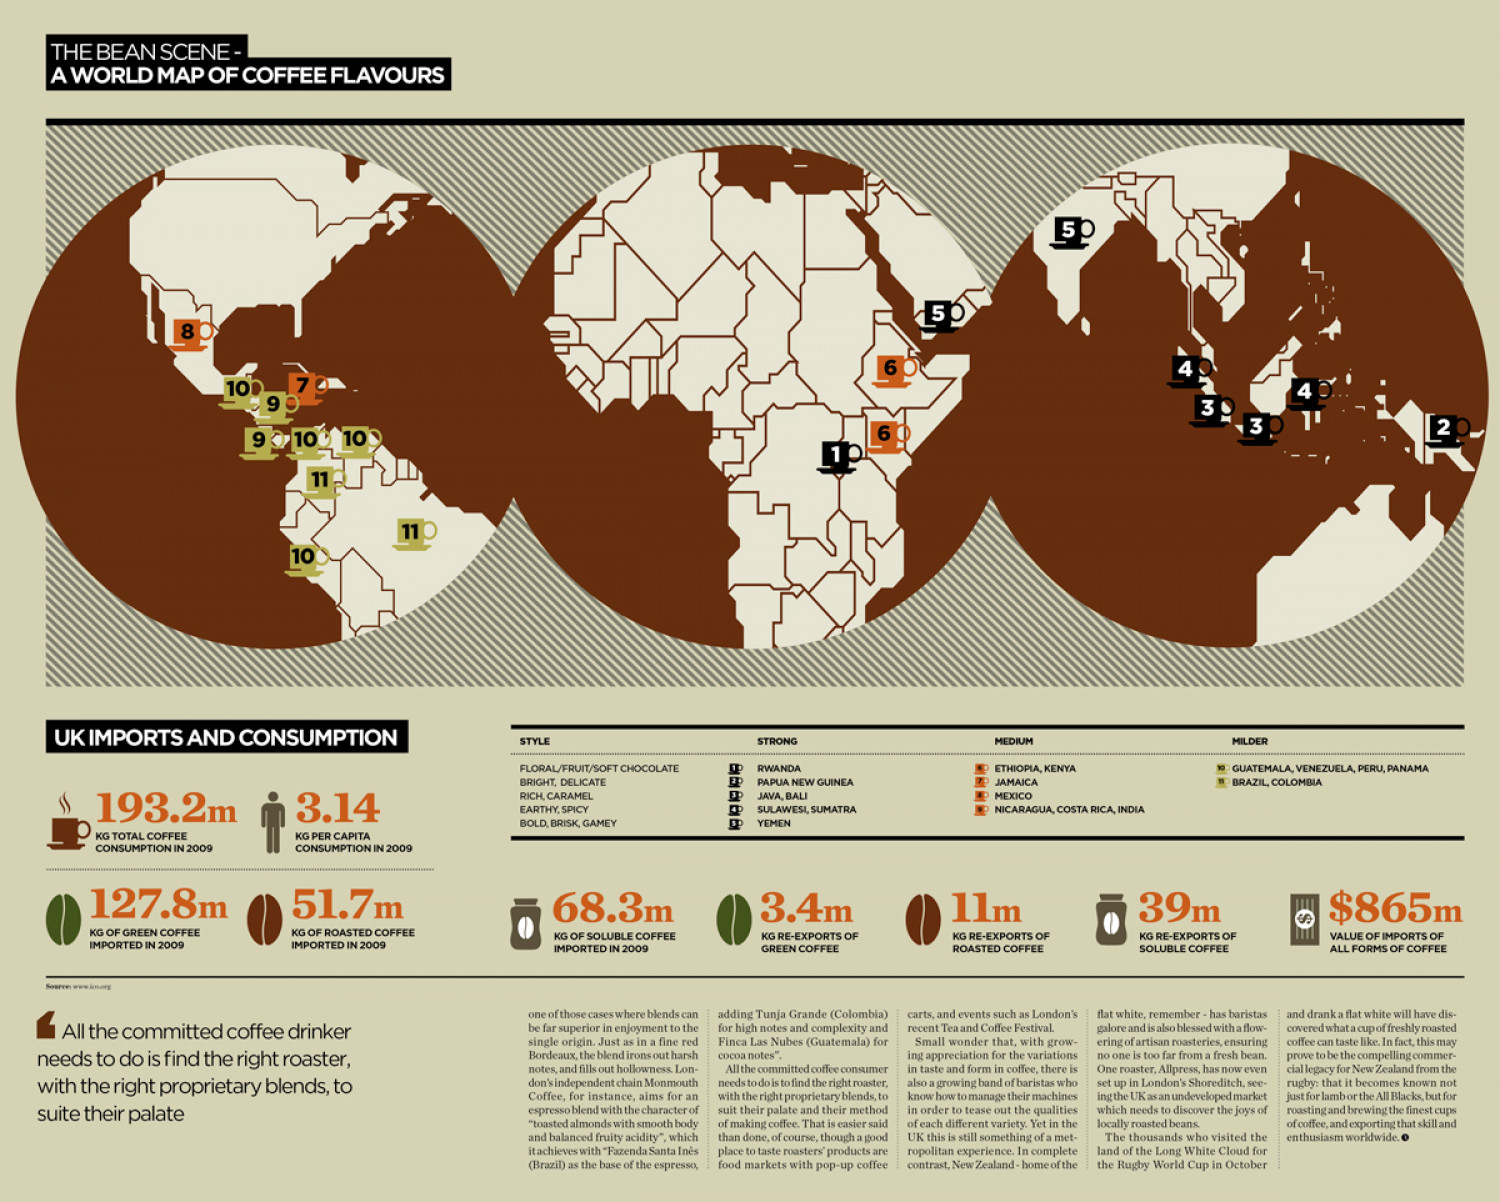 World Map of Coffee Flavours + Consumption Stats Infographic